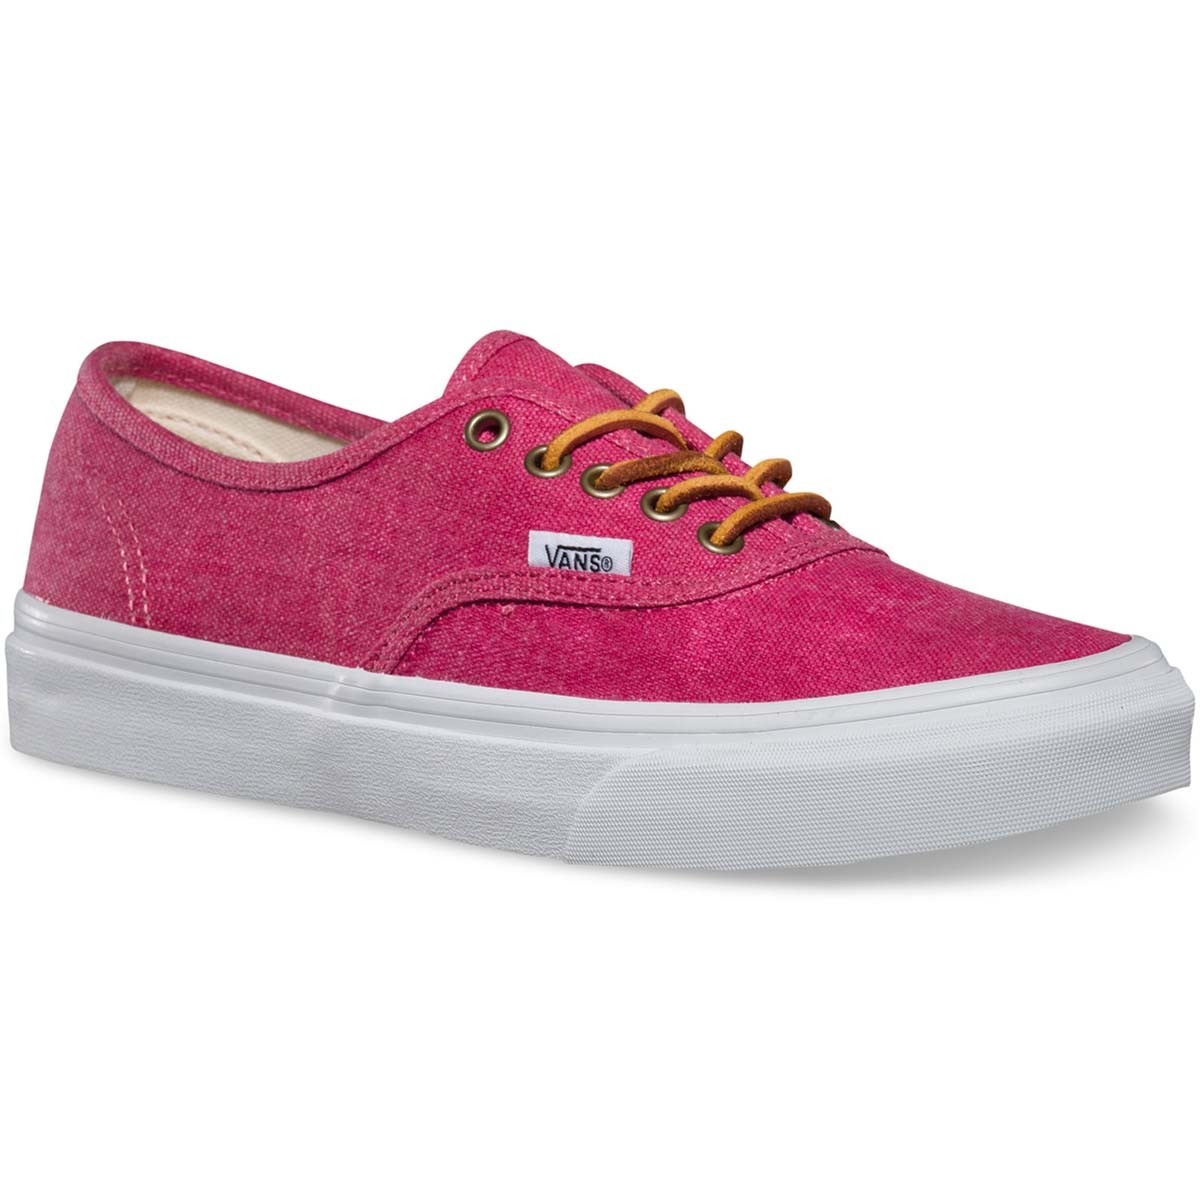 Vans Washed Authentic Slim Womens Shoes - Persian Red / True White 7.5